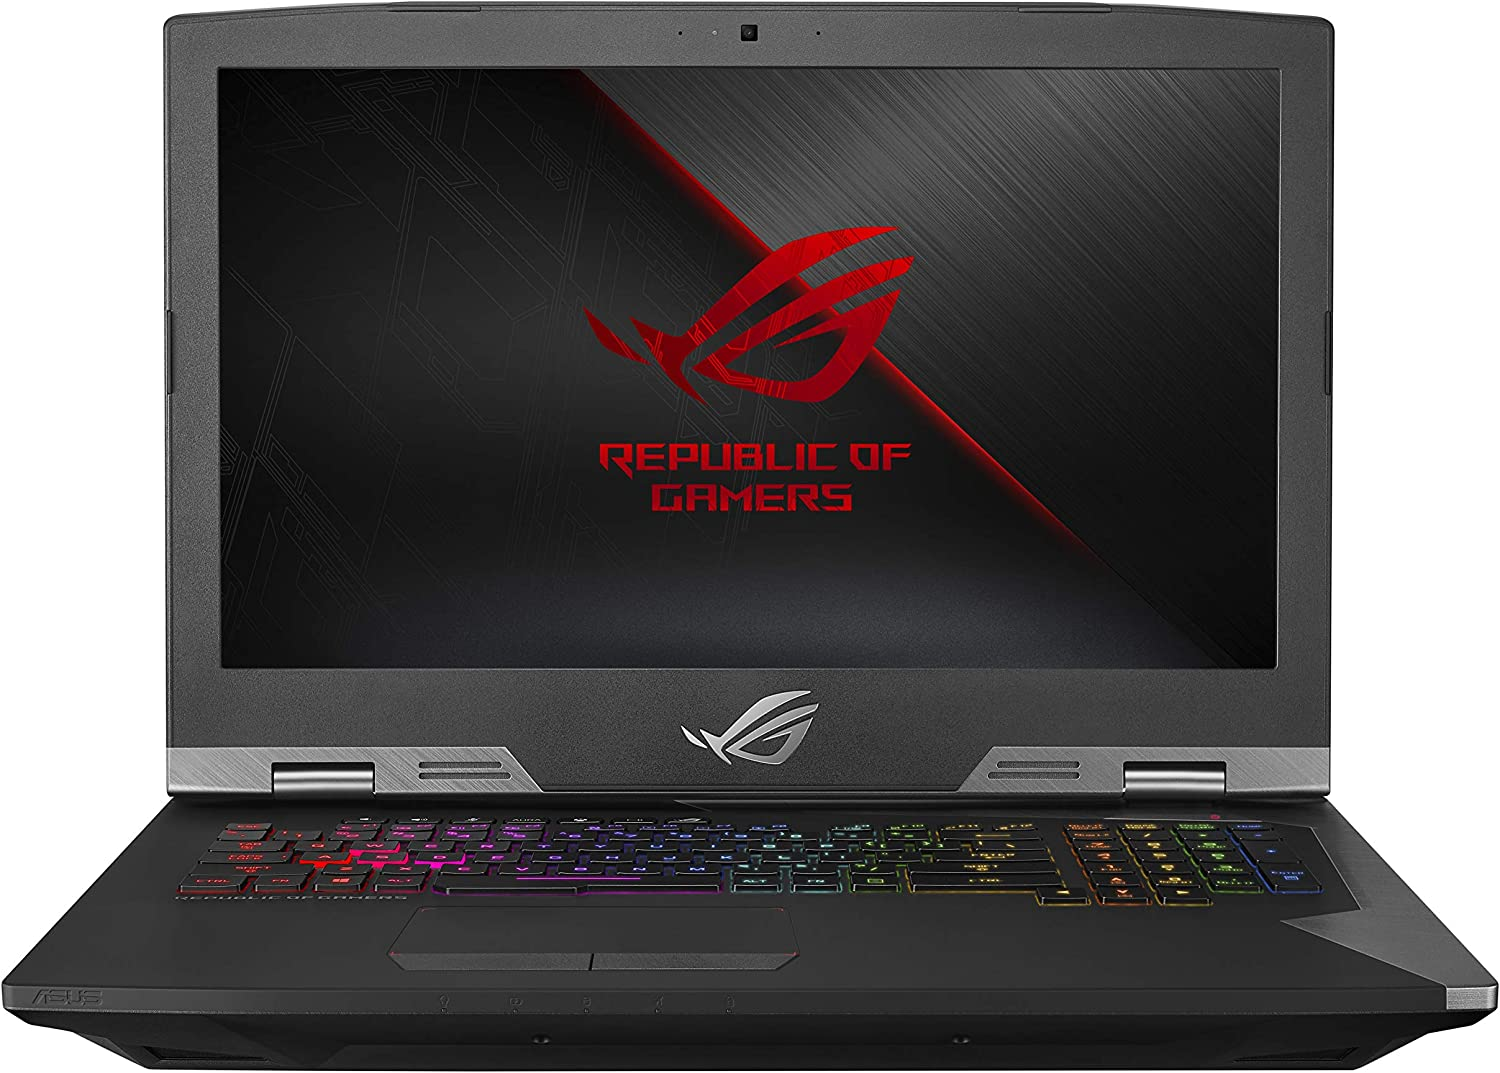 1. ASUS ROG G703GX Laptop-Best laptop for 3ds max vray rendering 2021